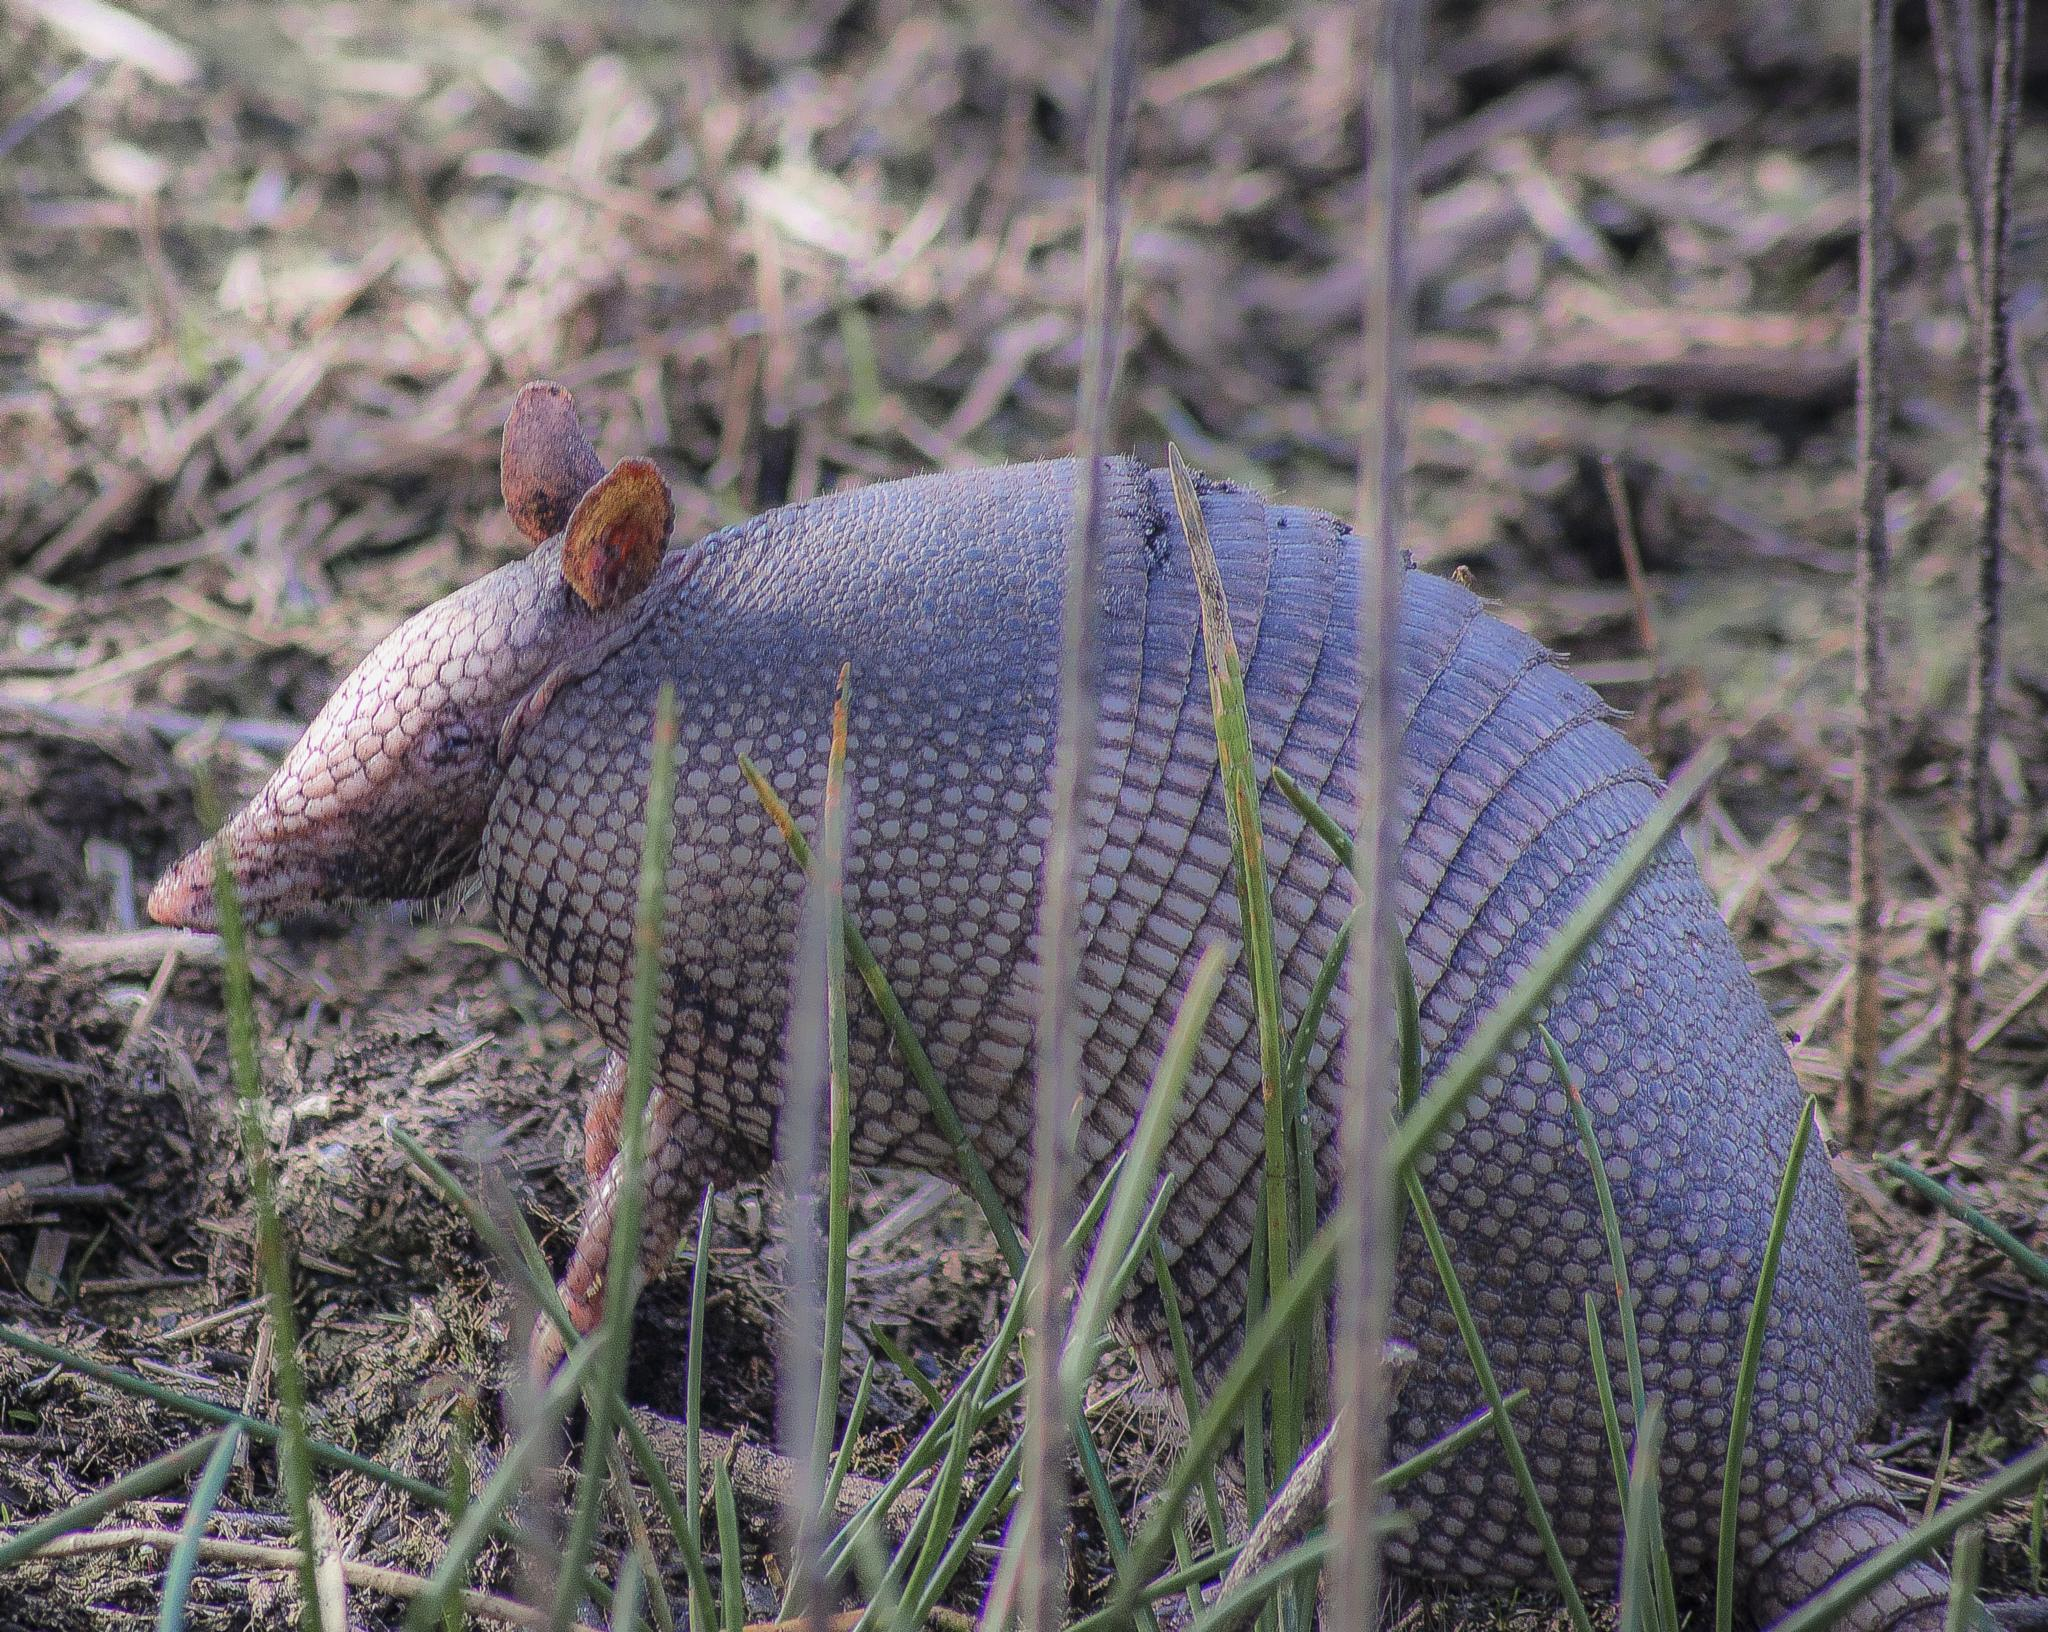 Curious Armadillo by Michael C Frizzell